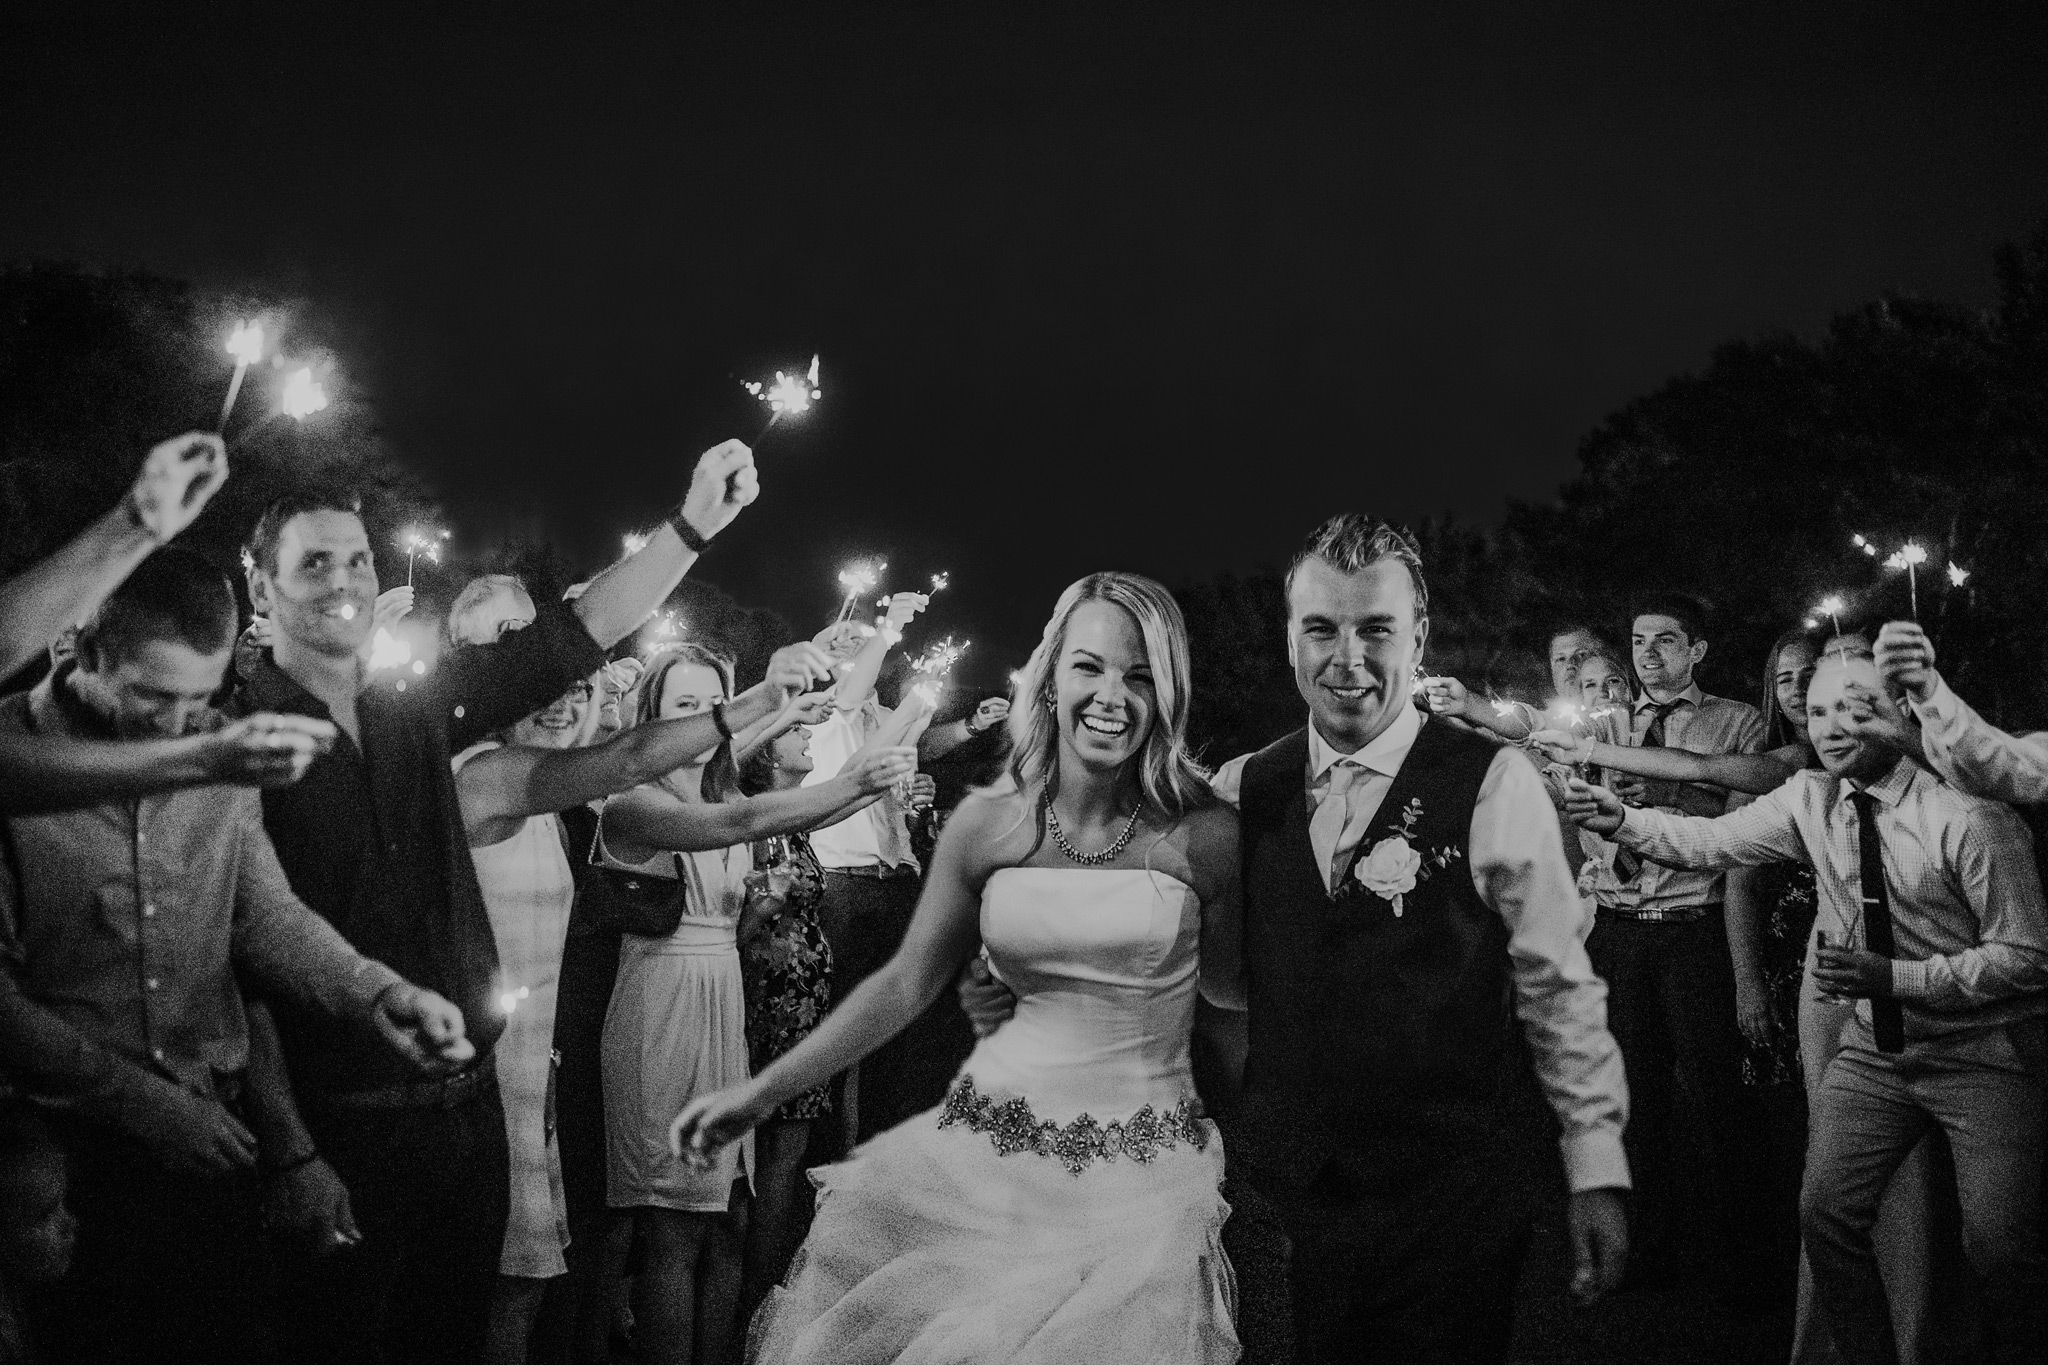 sparkler exit bride and groom walking down aisle of guests holding sparklers